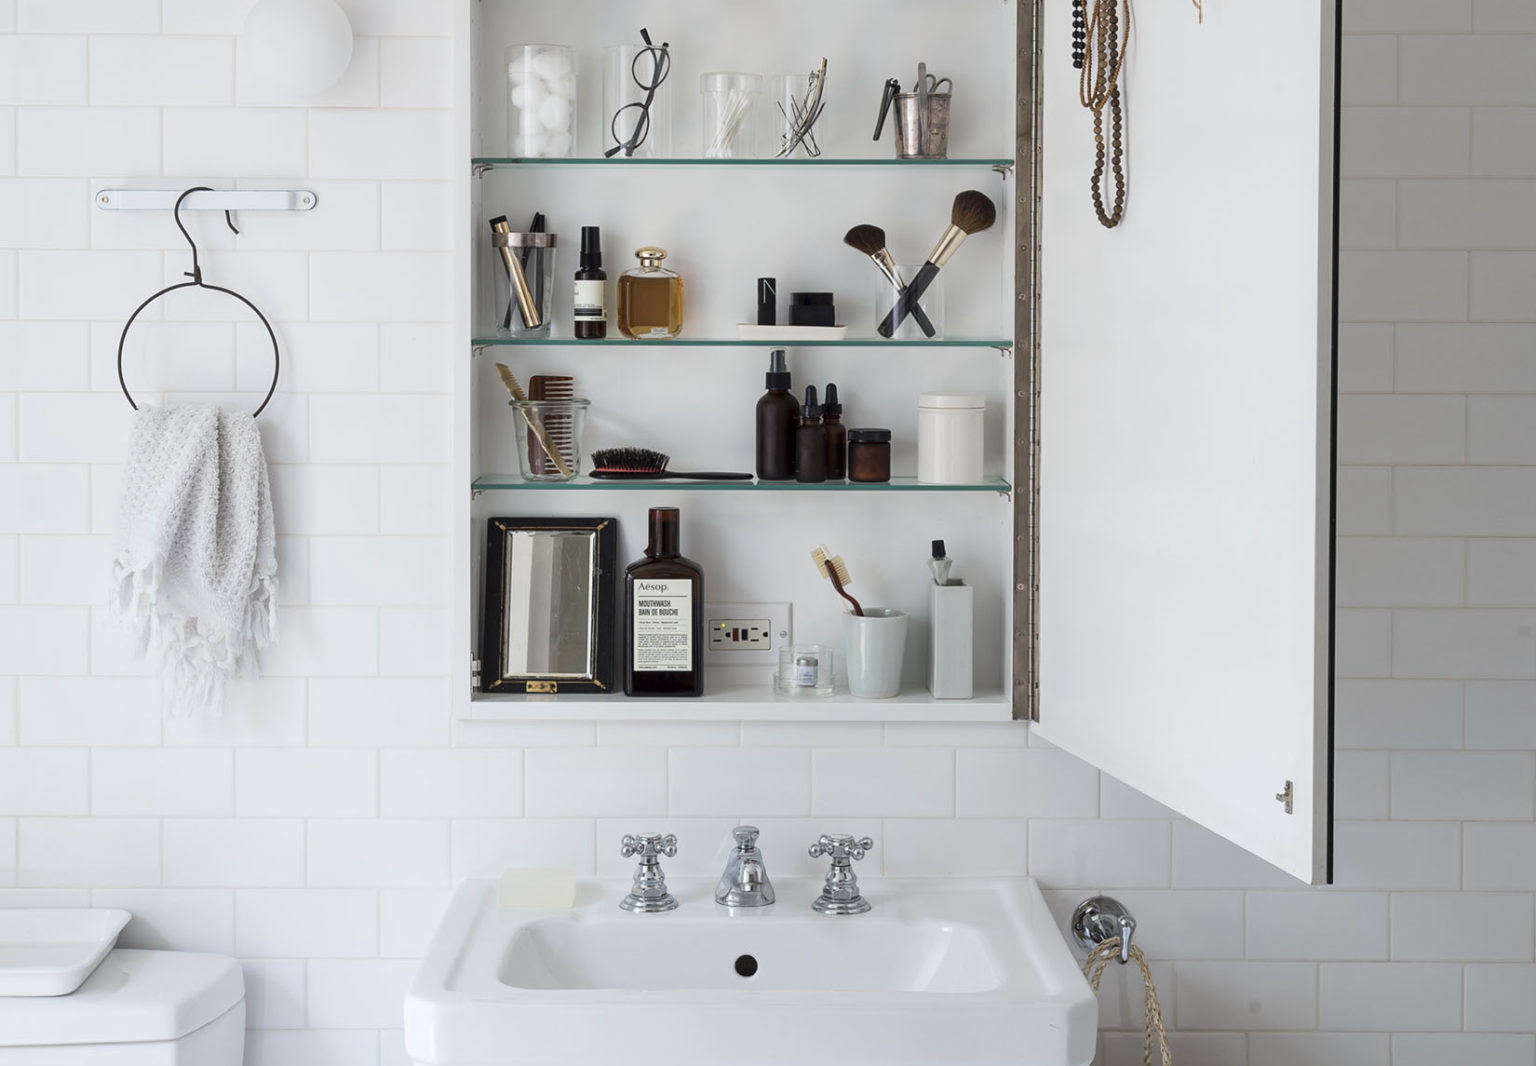 Medicine cabinet as vanity from Remodelista The Organized Home. Matthew Williams photo.